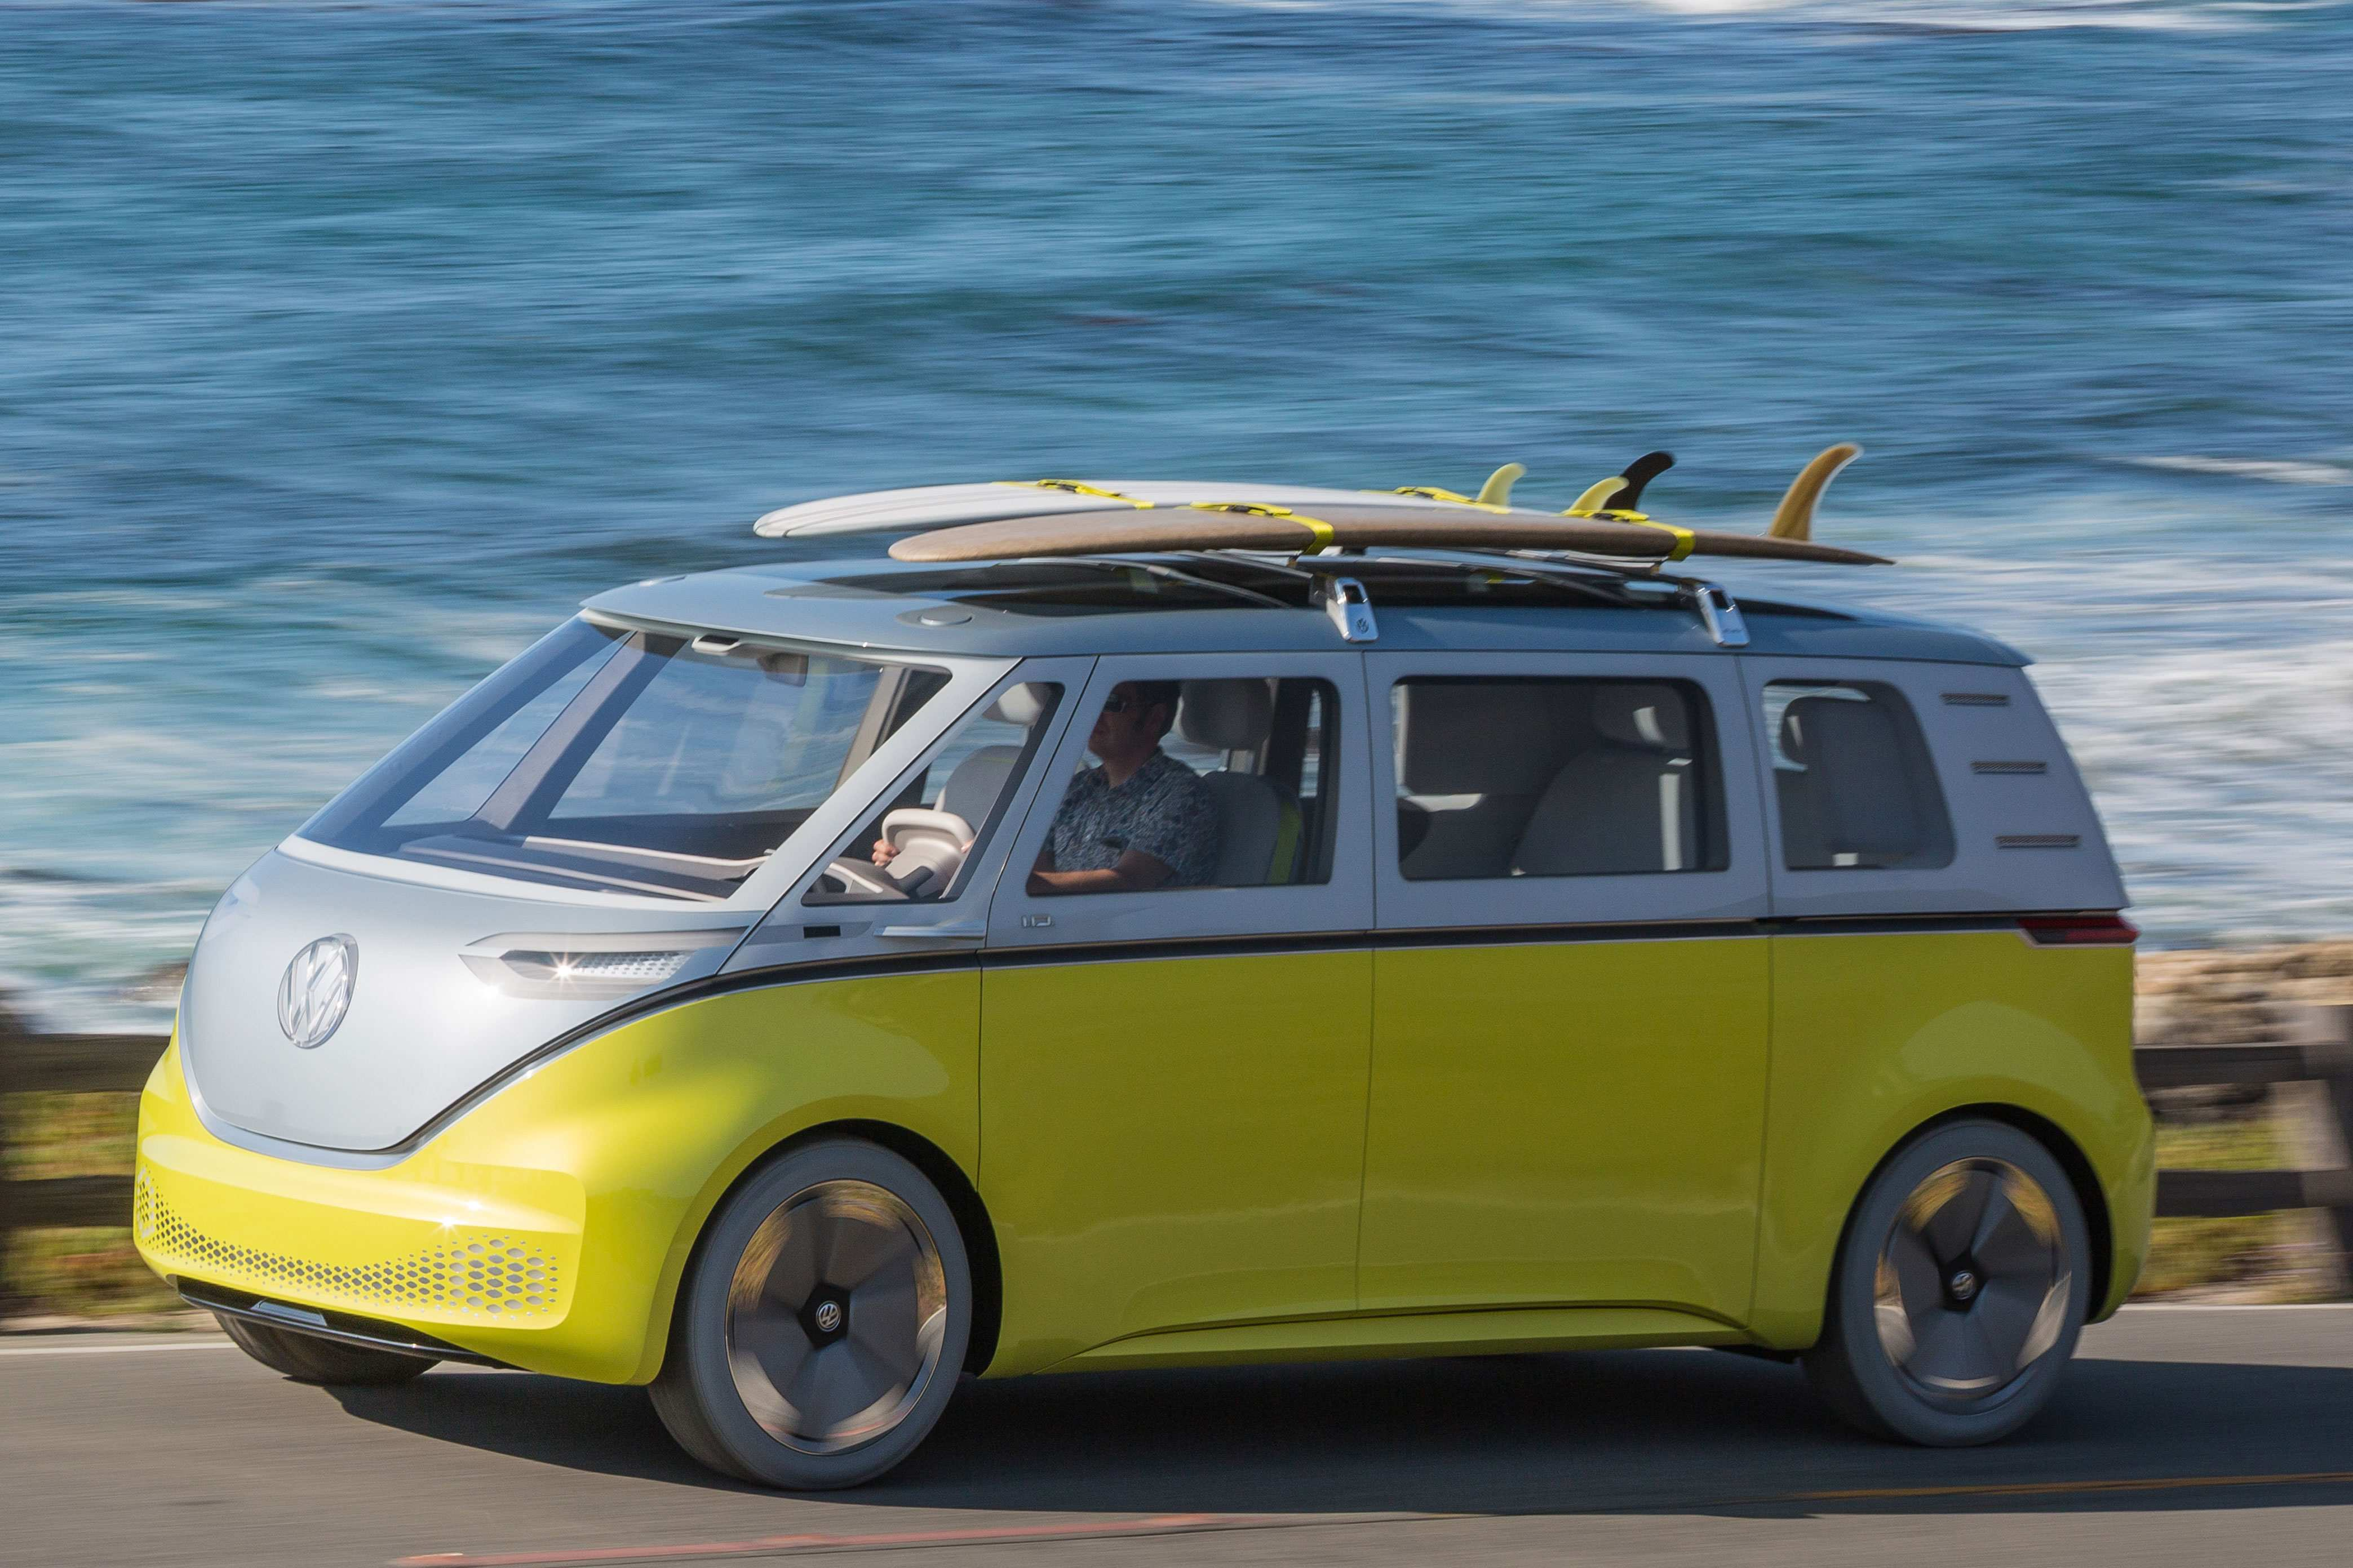 63 The 2020 Vw Bus Price Reviews by 2020 Vw Bus Price